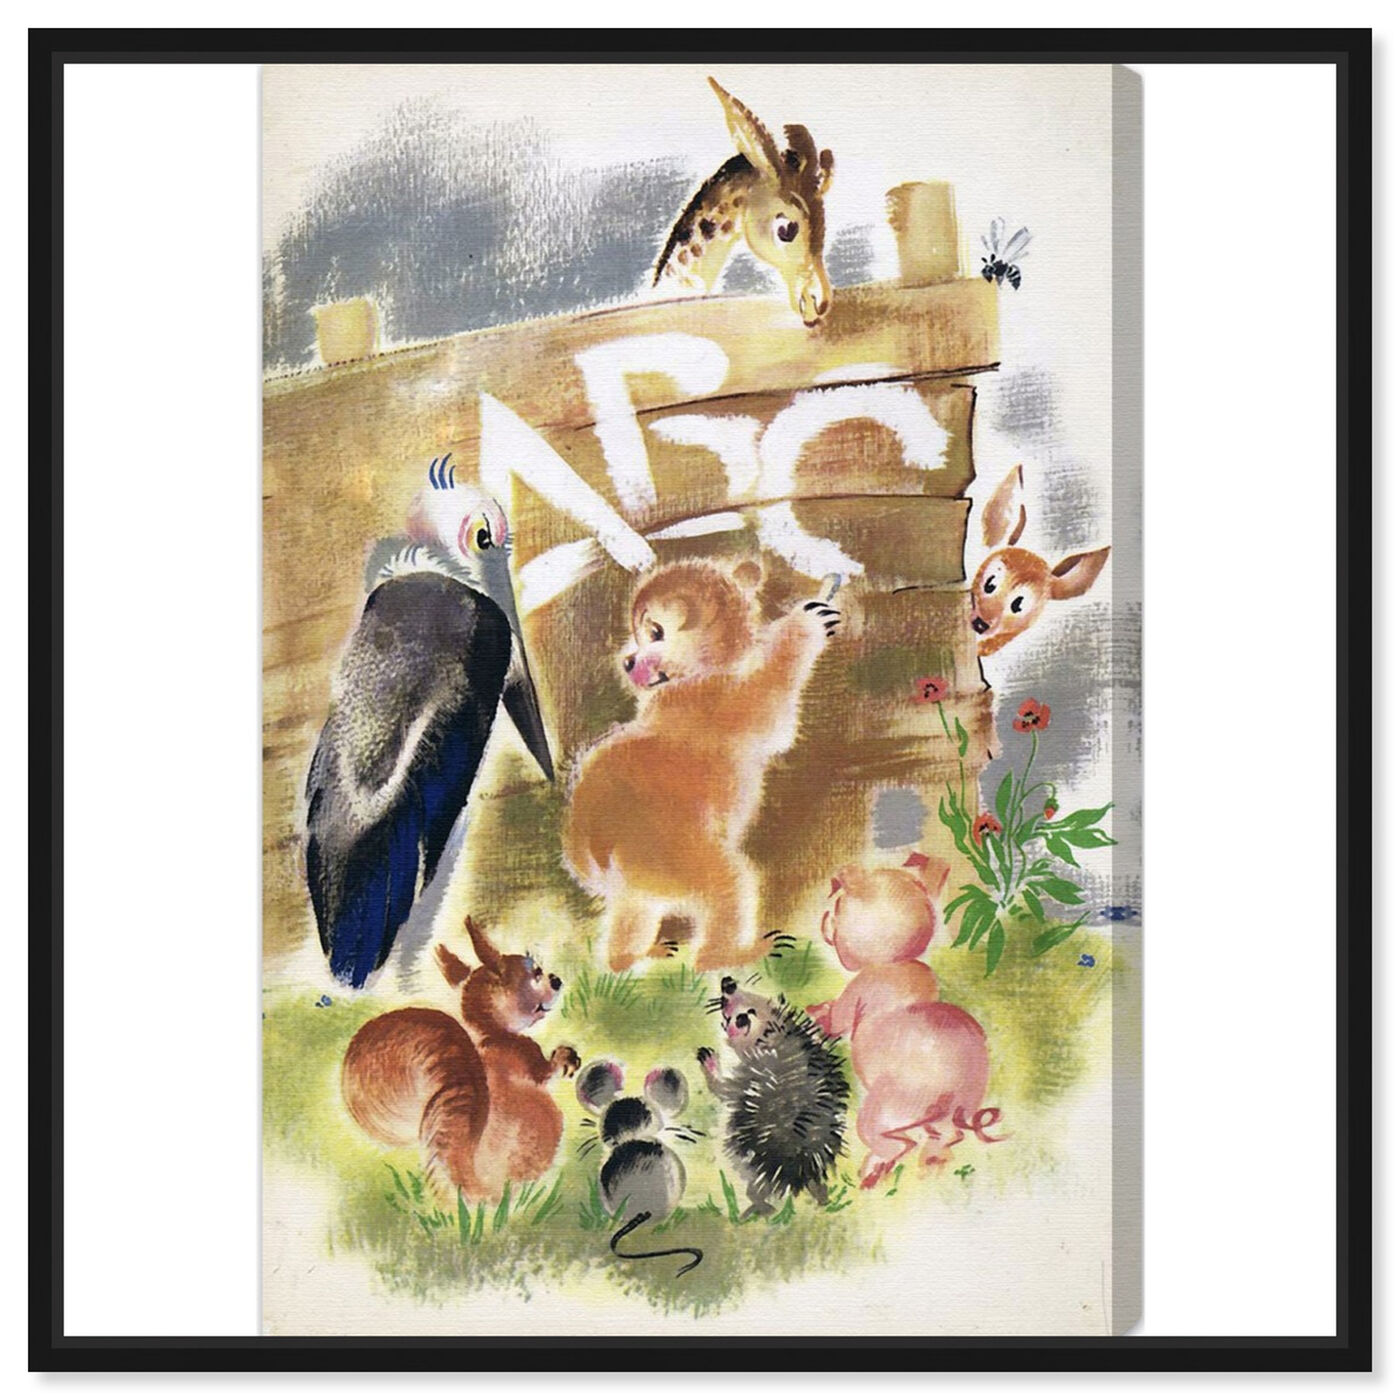 Front view of Animal ABC featuring animals and baby animals art.